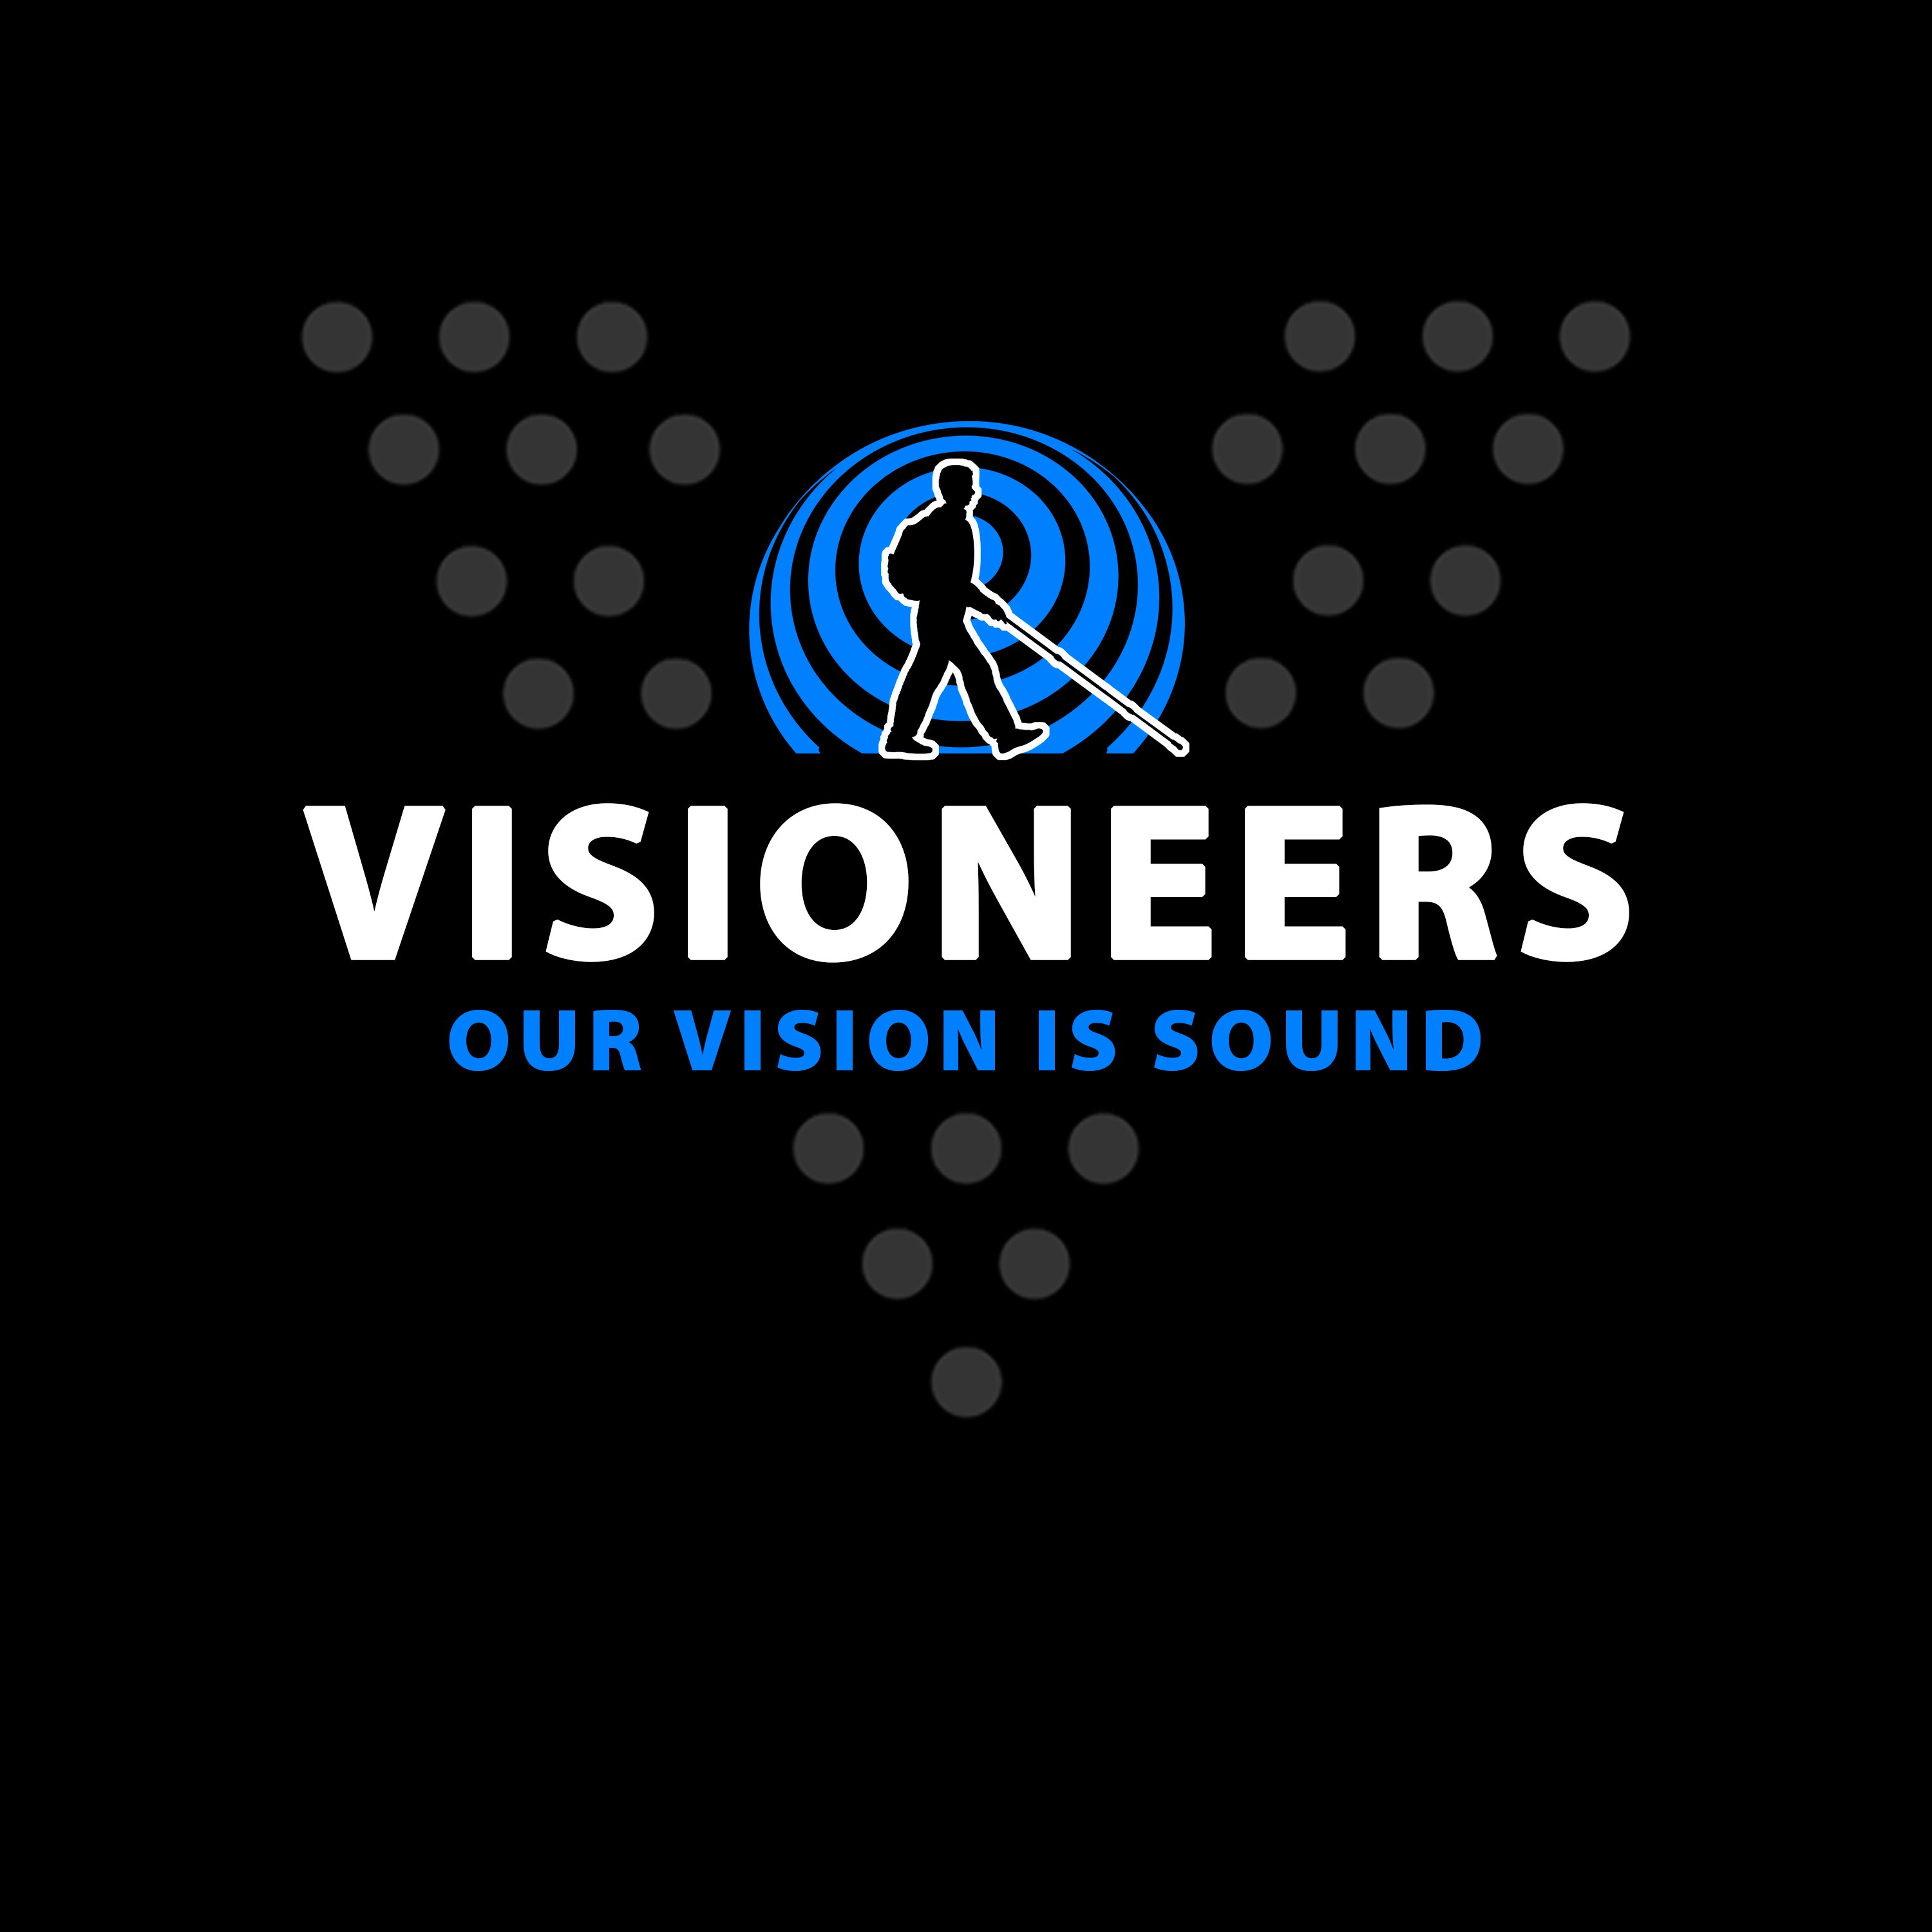 Visioneers 13. Same as previous panel but with rear sonar wave and Our Vision Is Sound changed to blue.